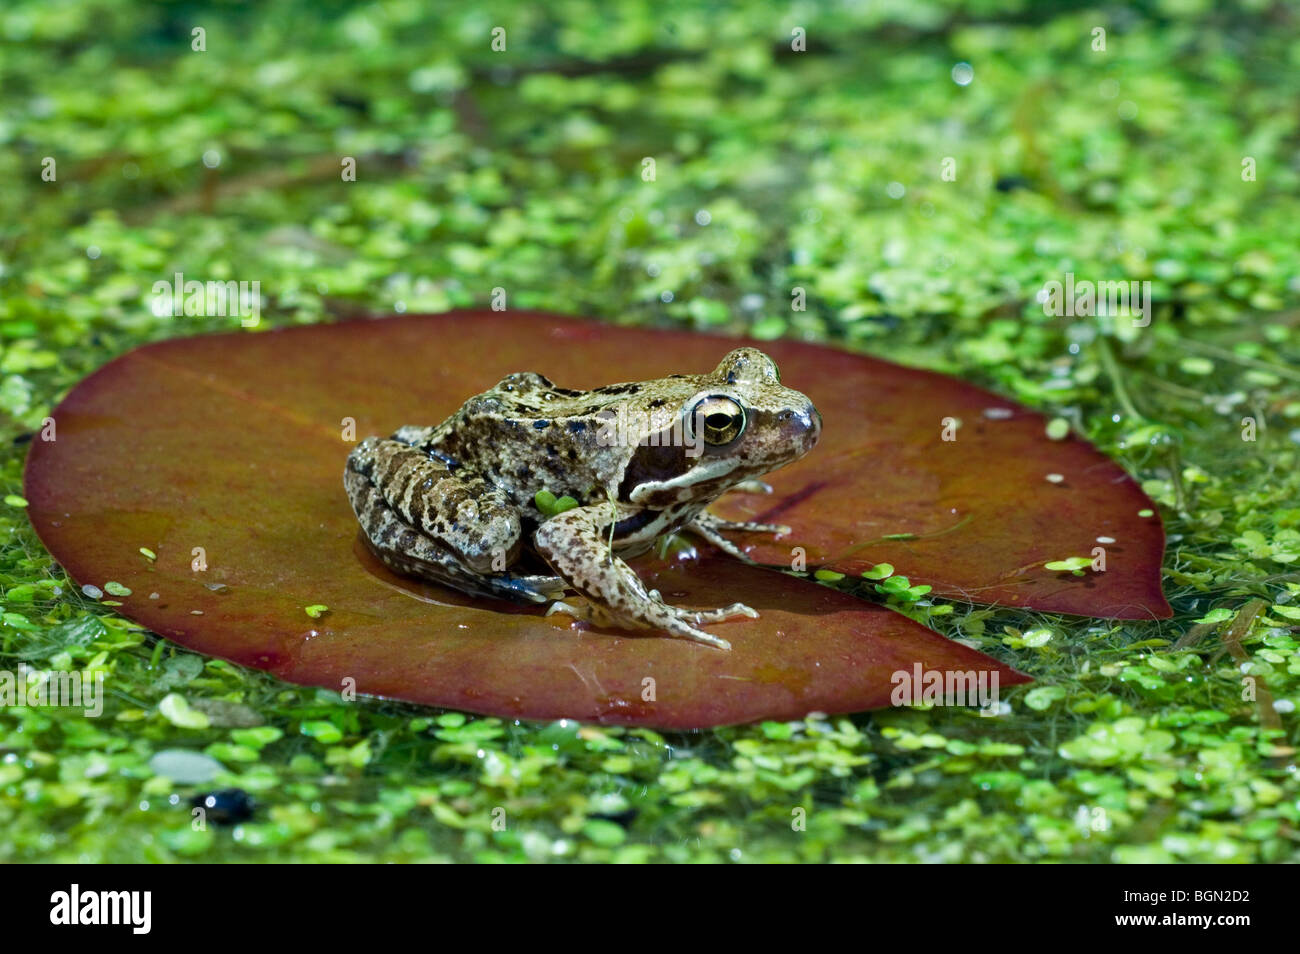 European common brown frog (Rana temporaria) sitting on water lily pad amongst duckweed in pond - Stock Image